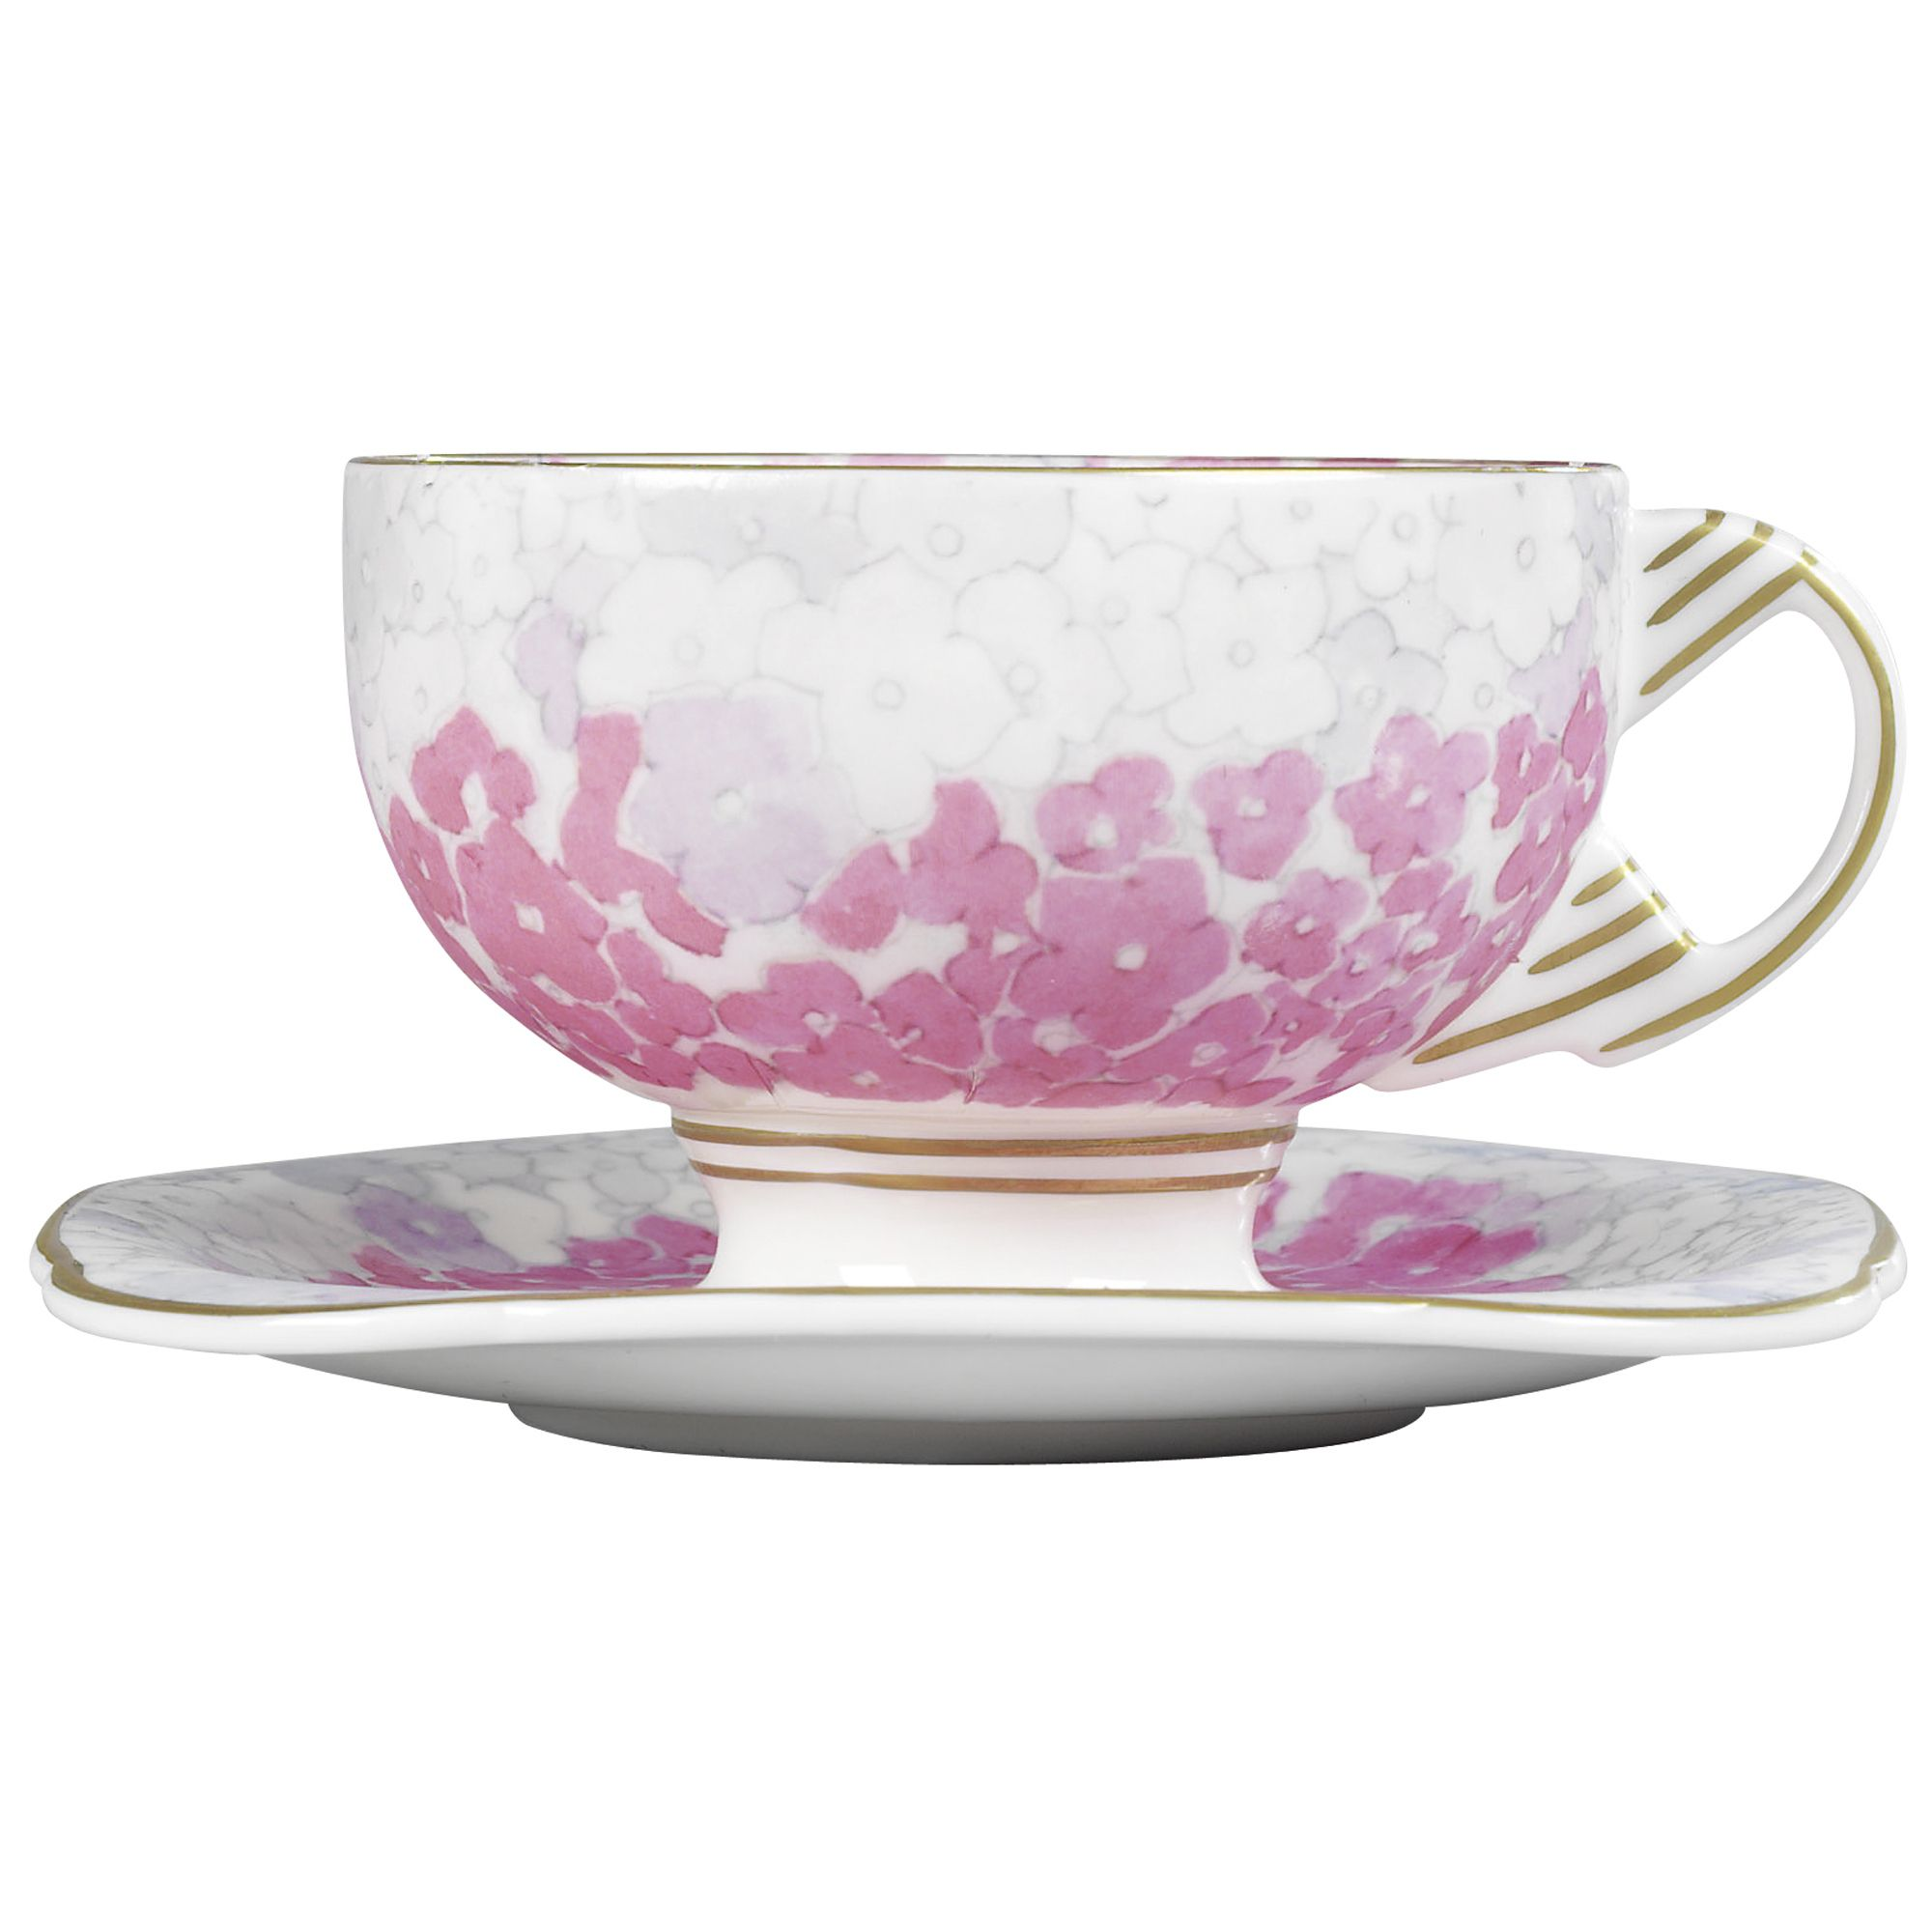 Deco bloom cup and saucer